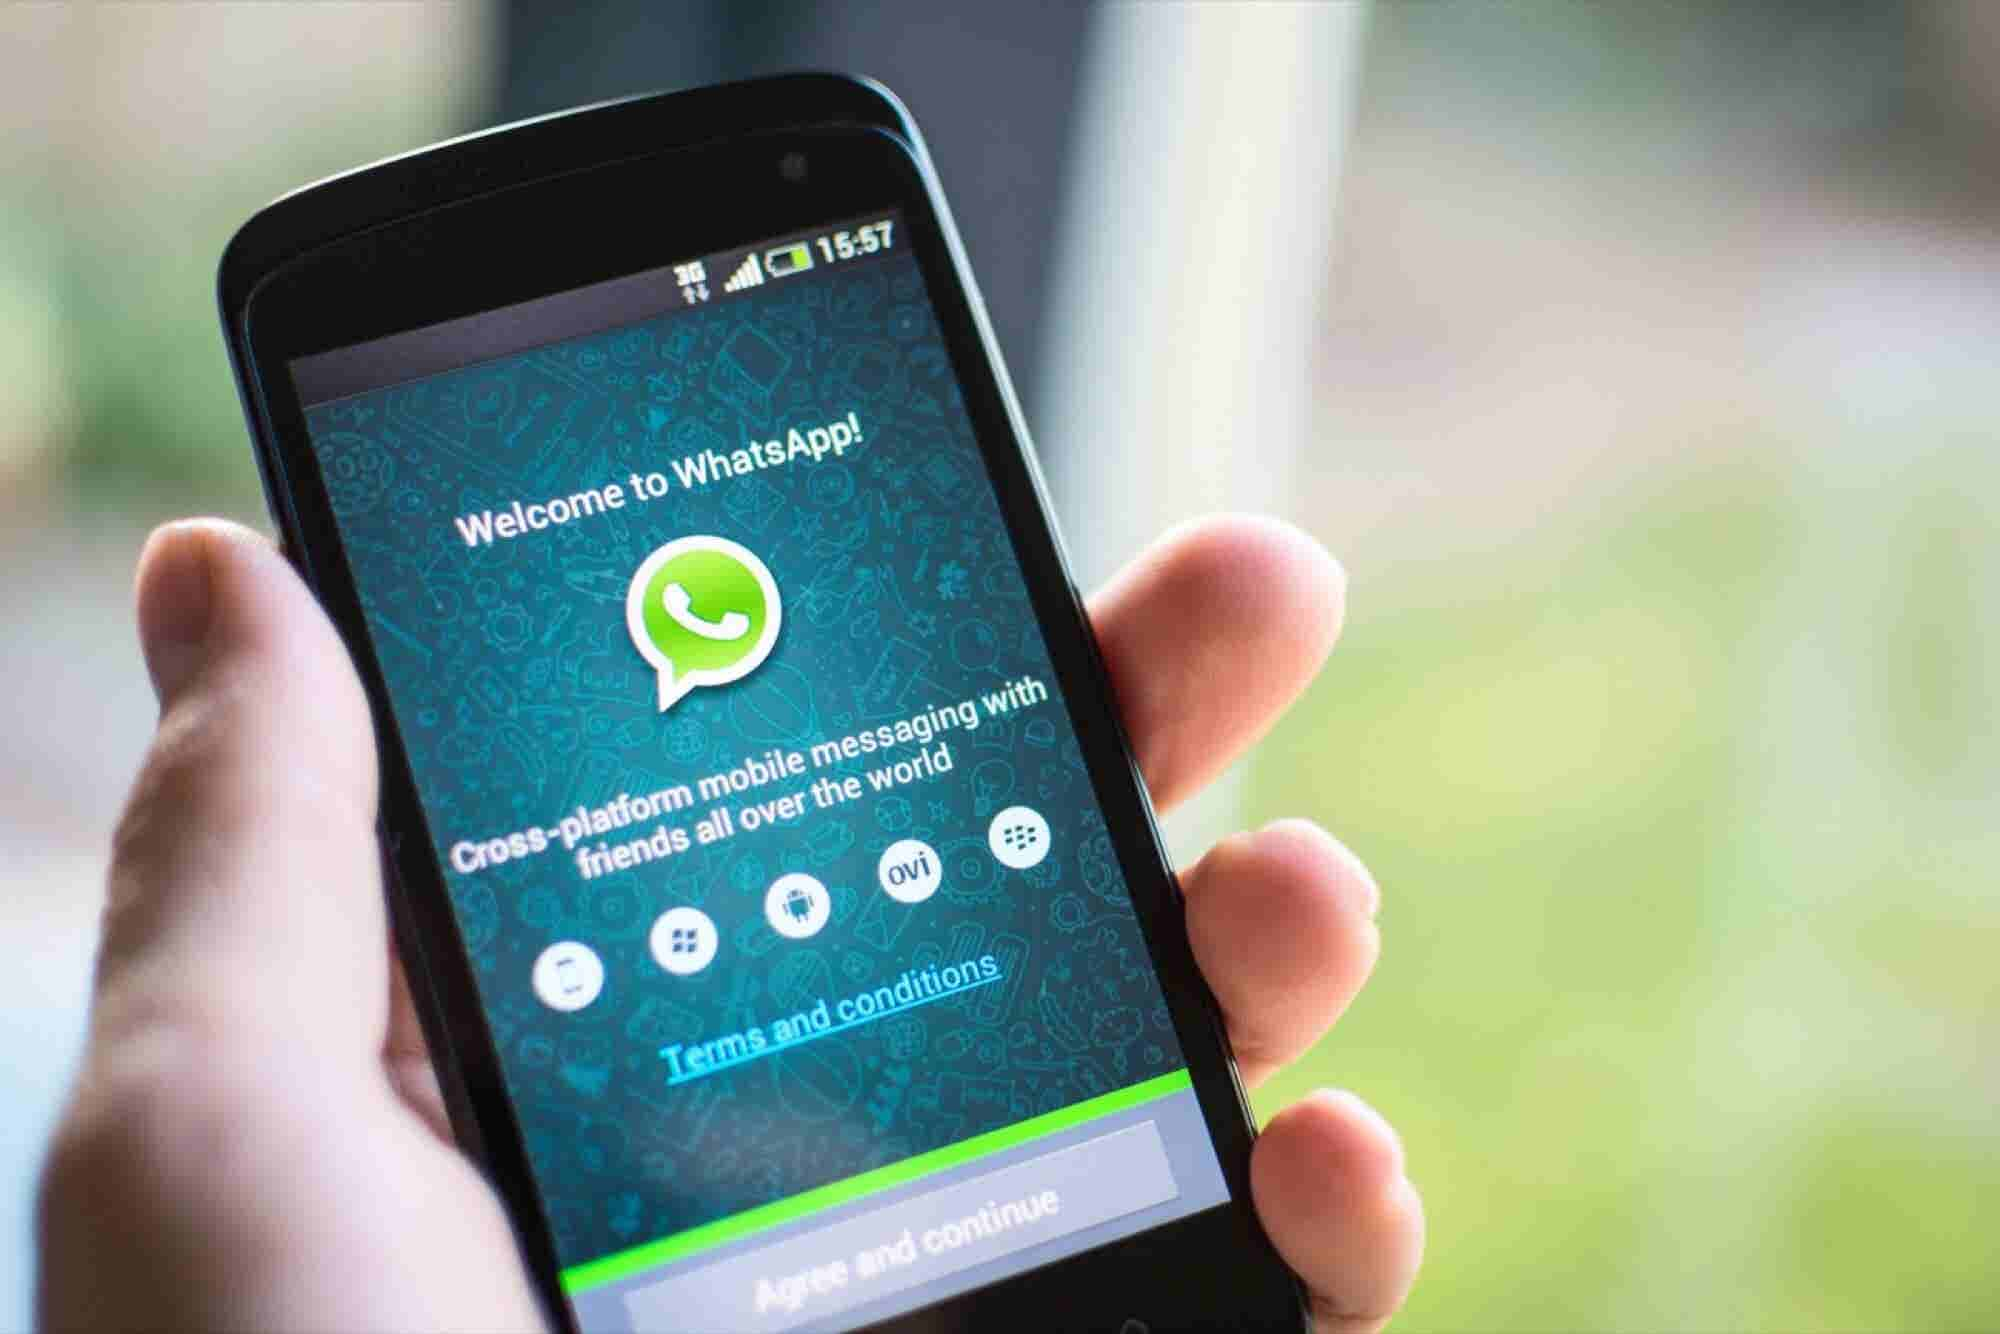 Why Did a Judge Block 100 Million WhatsApp Users?